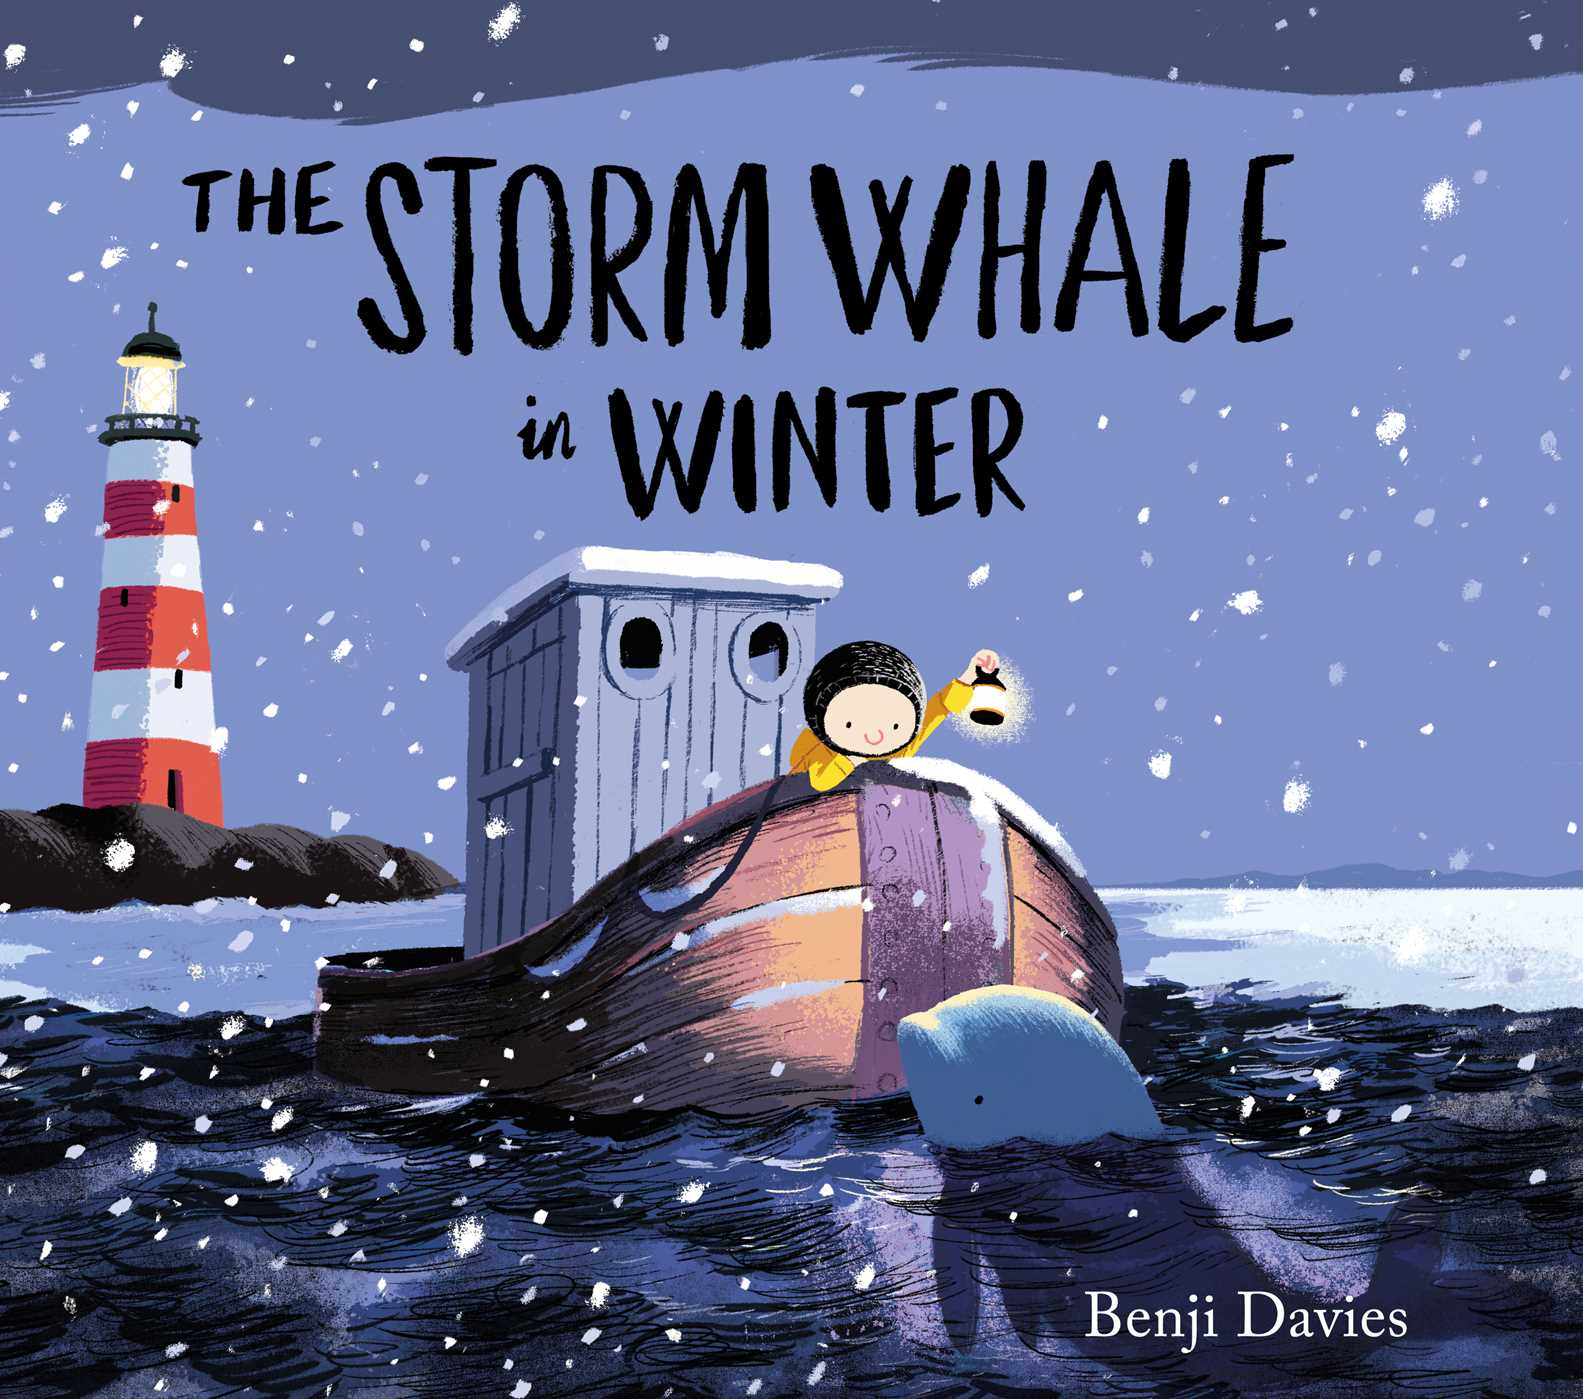 The storm whale in winter 9781471119989 hr